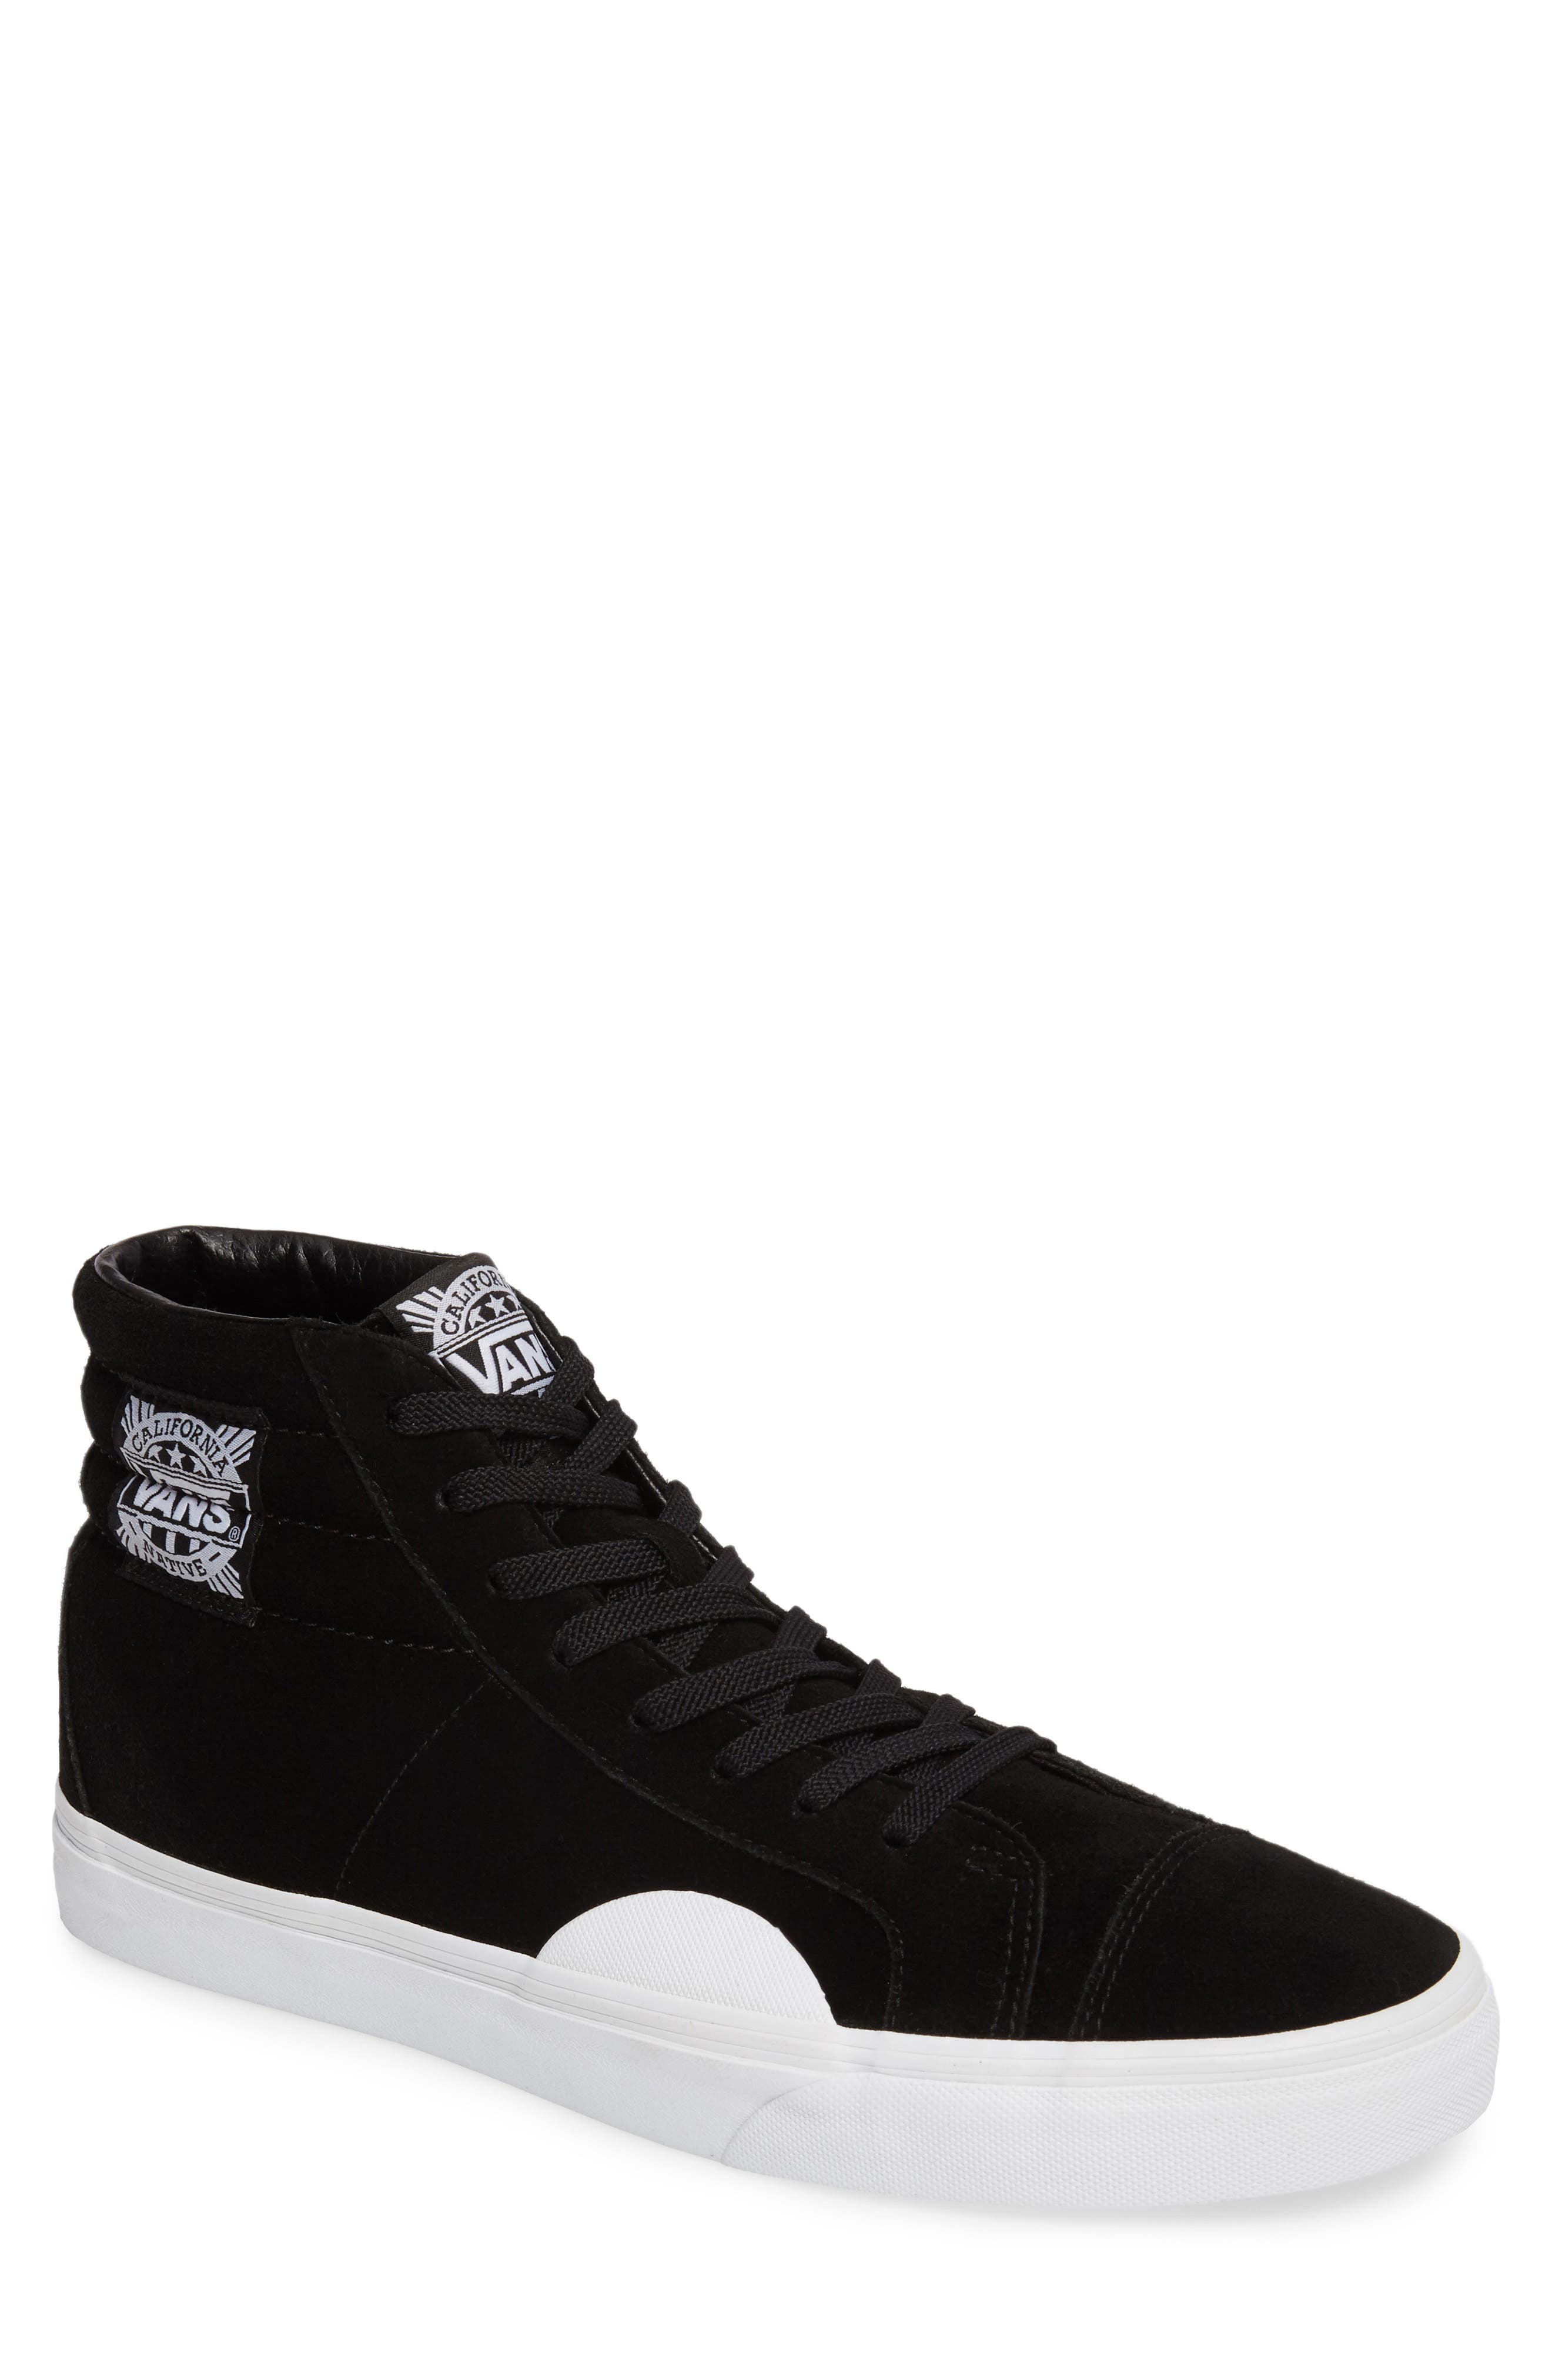 Style 238 Sneaker,                             Main thumbnail 1, color,                             Black/ White Suede